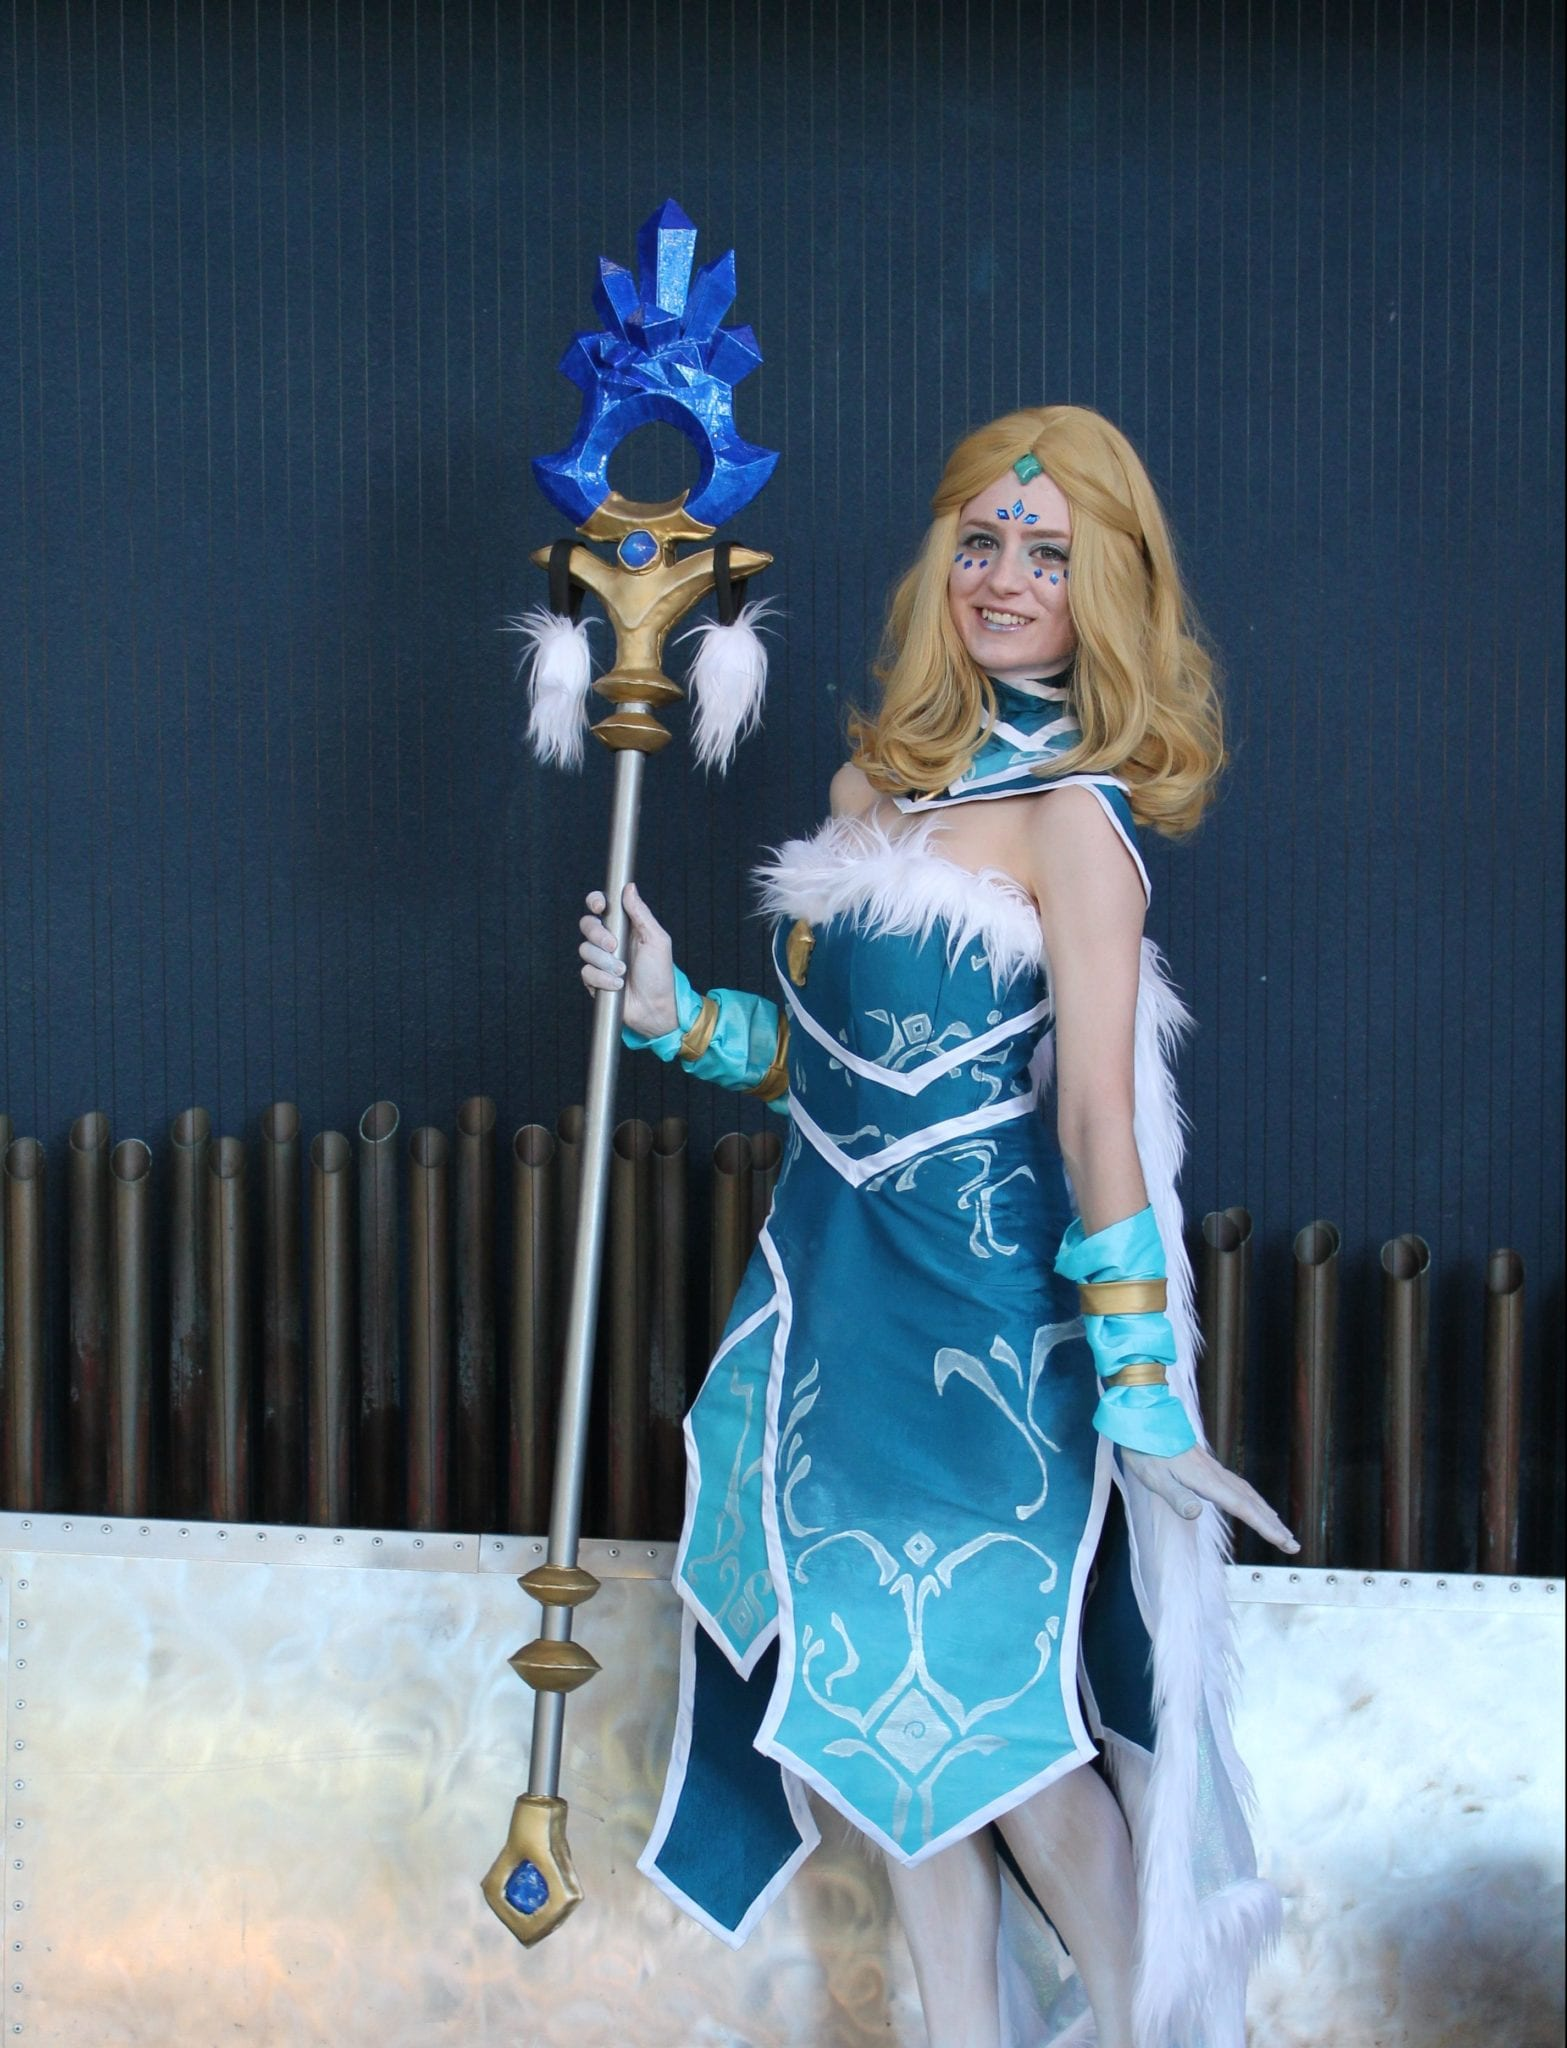 Crystal Maiden Dota 2 Cosplay Wins 2 500 In The Dota 2